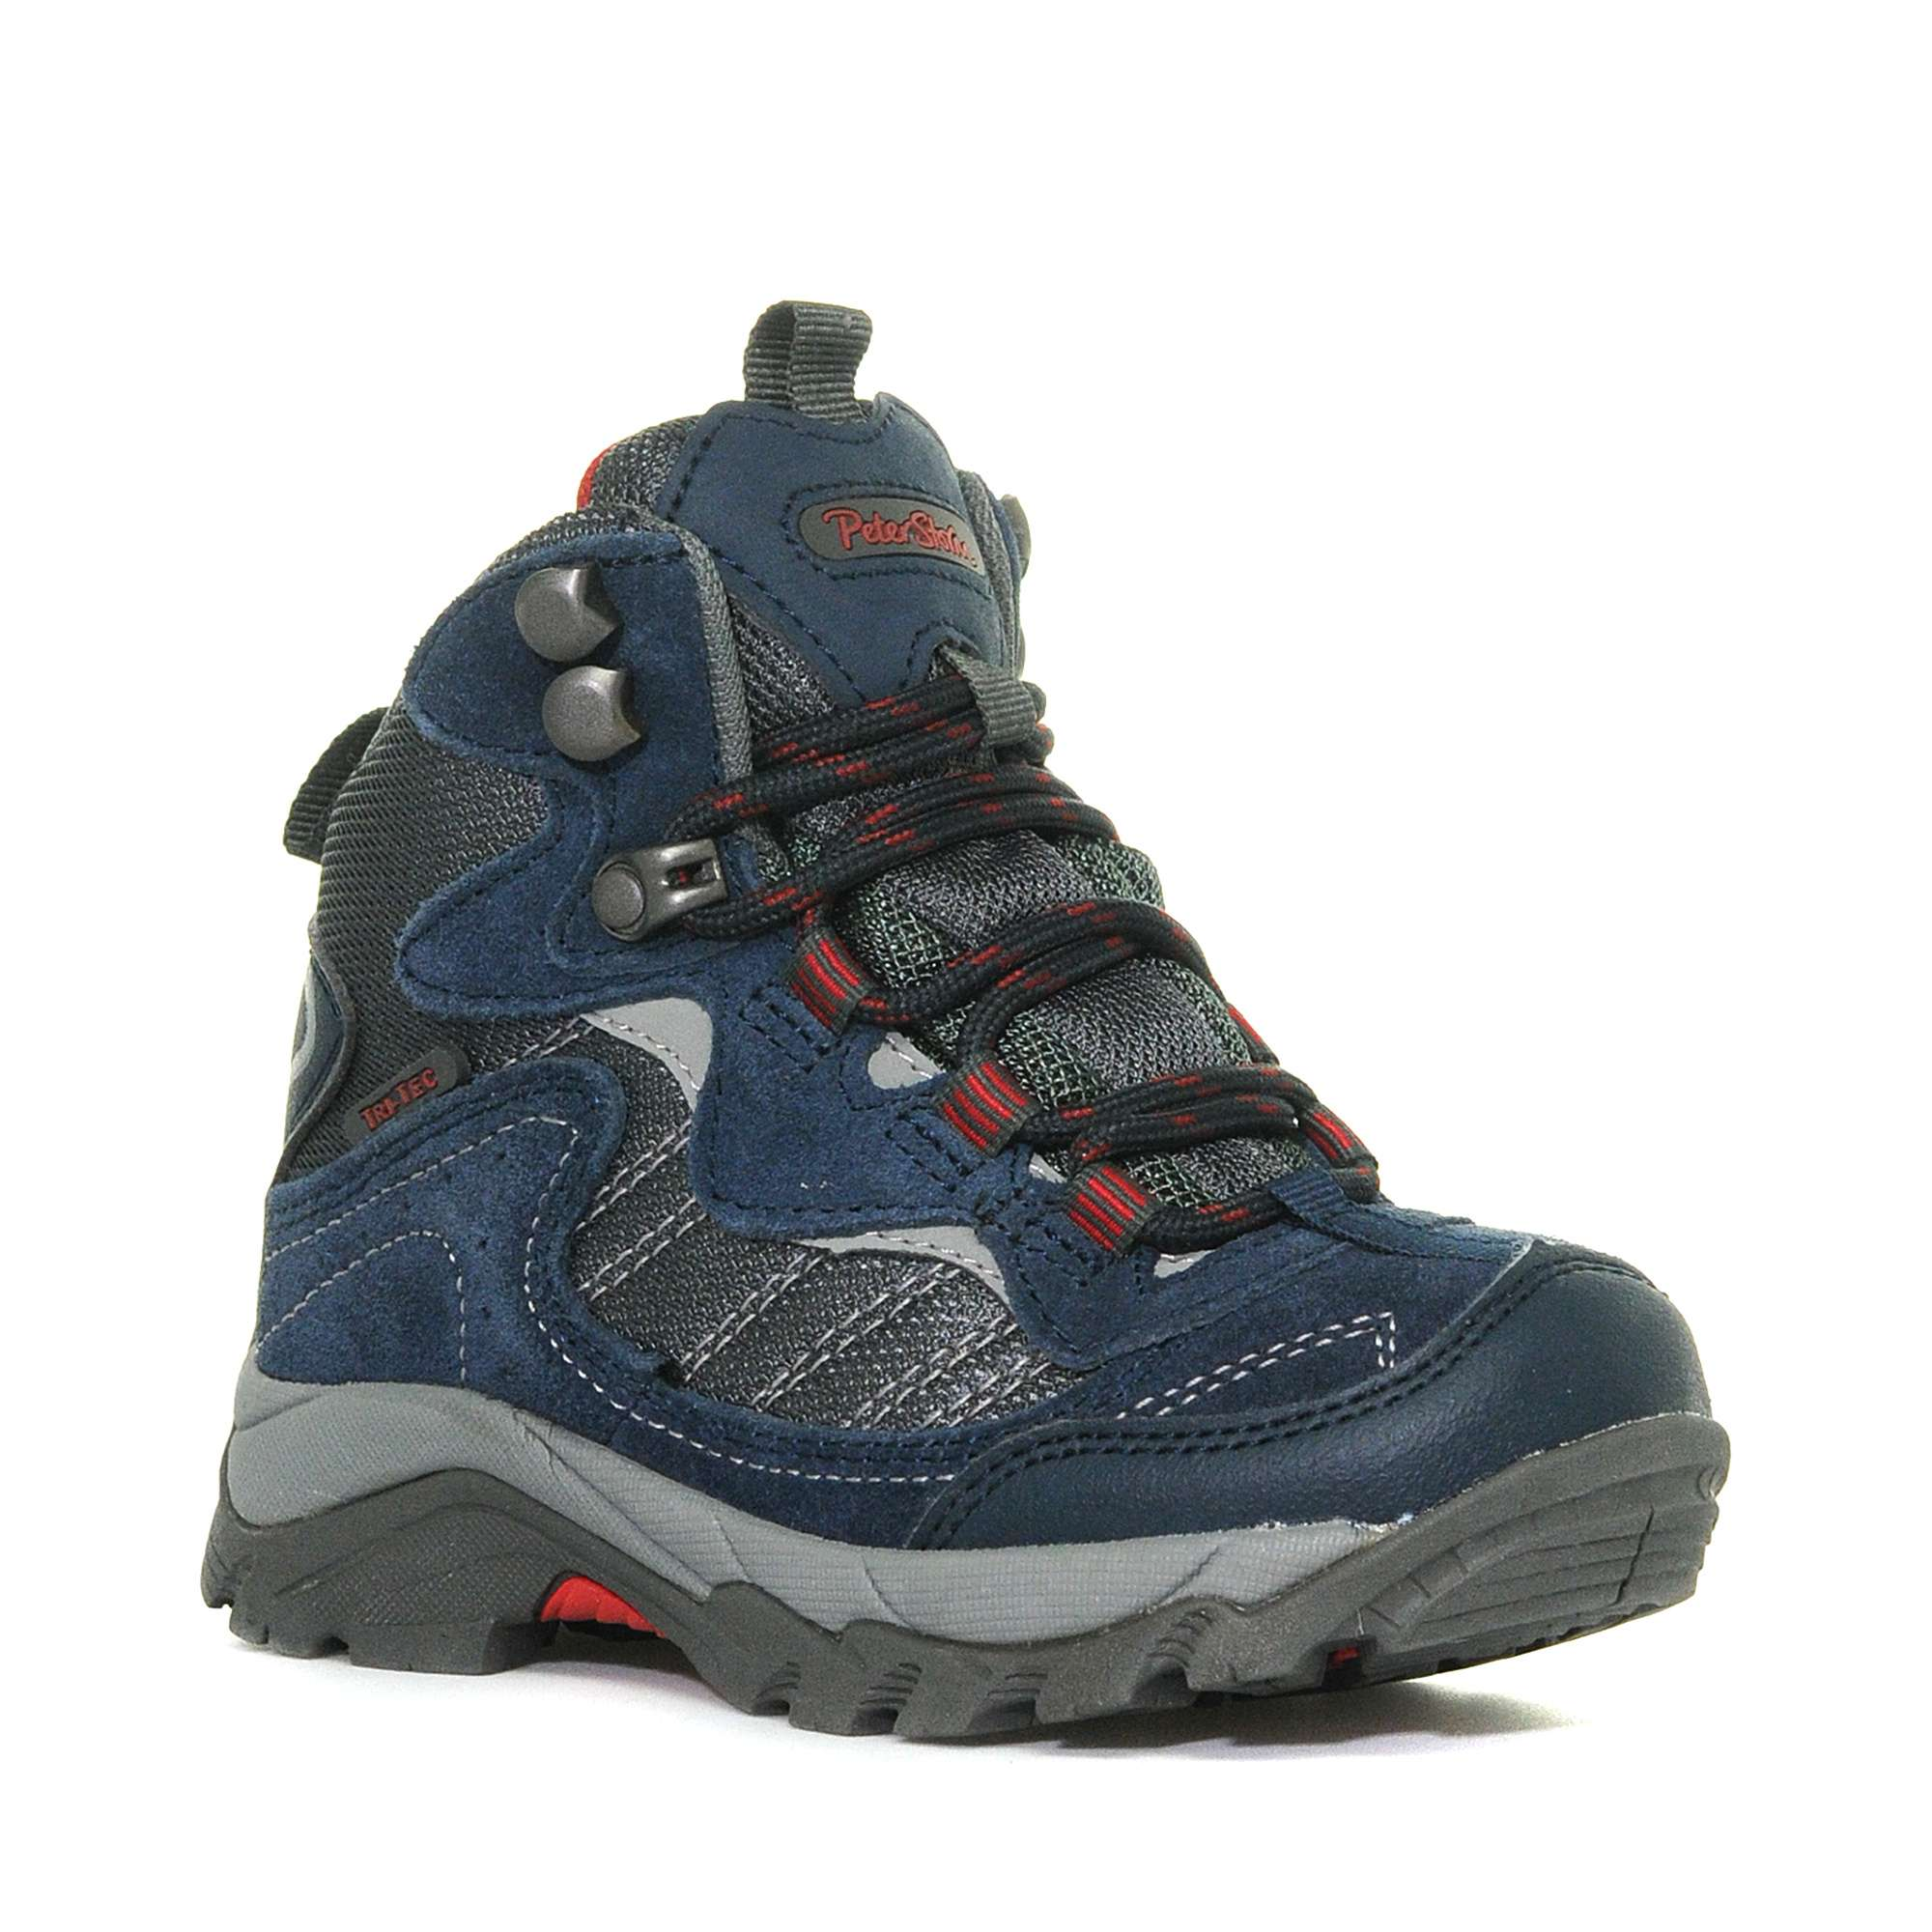 PETER STORM Boys' Ormskirk Waterproof Walking Boots